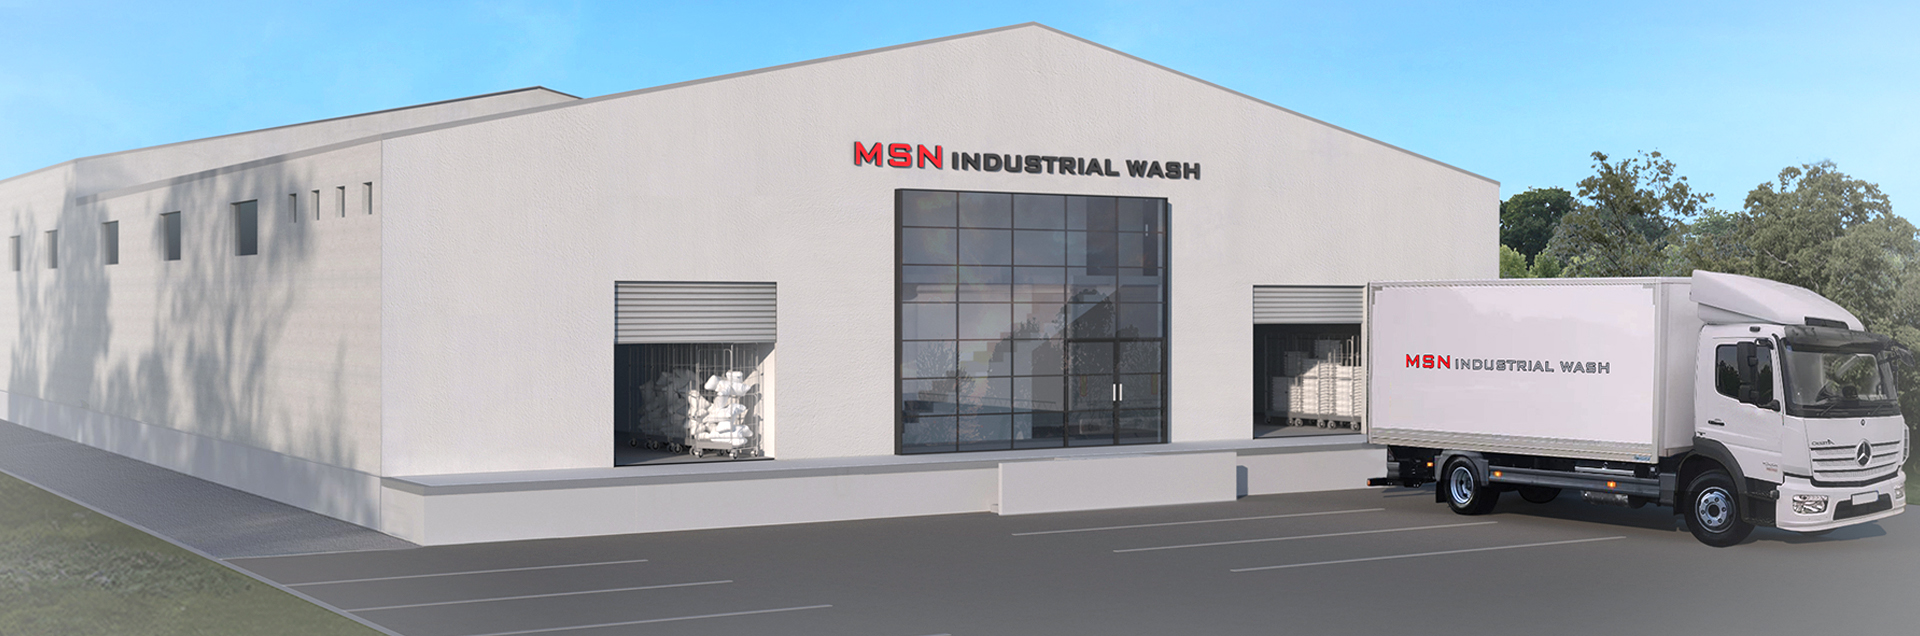 MSNIndustrial Wash spalatorie industriala Jupiter